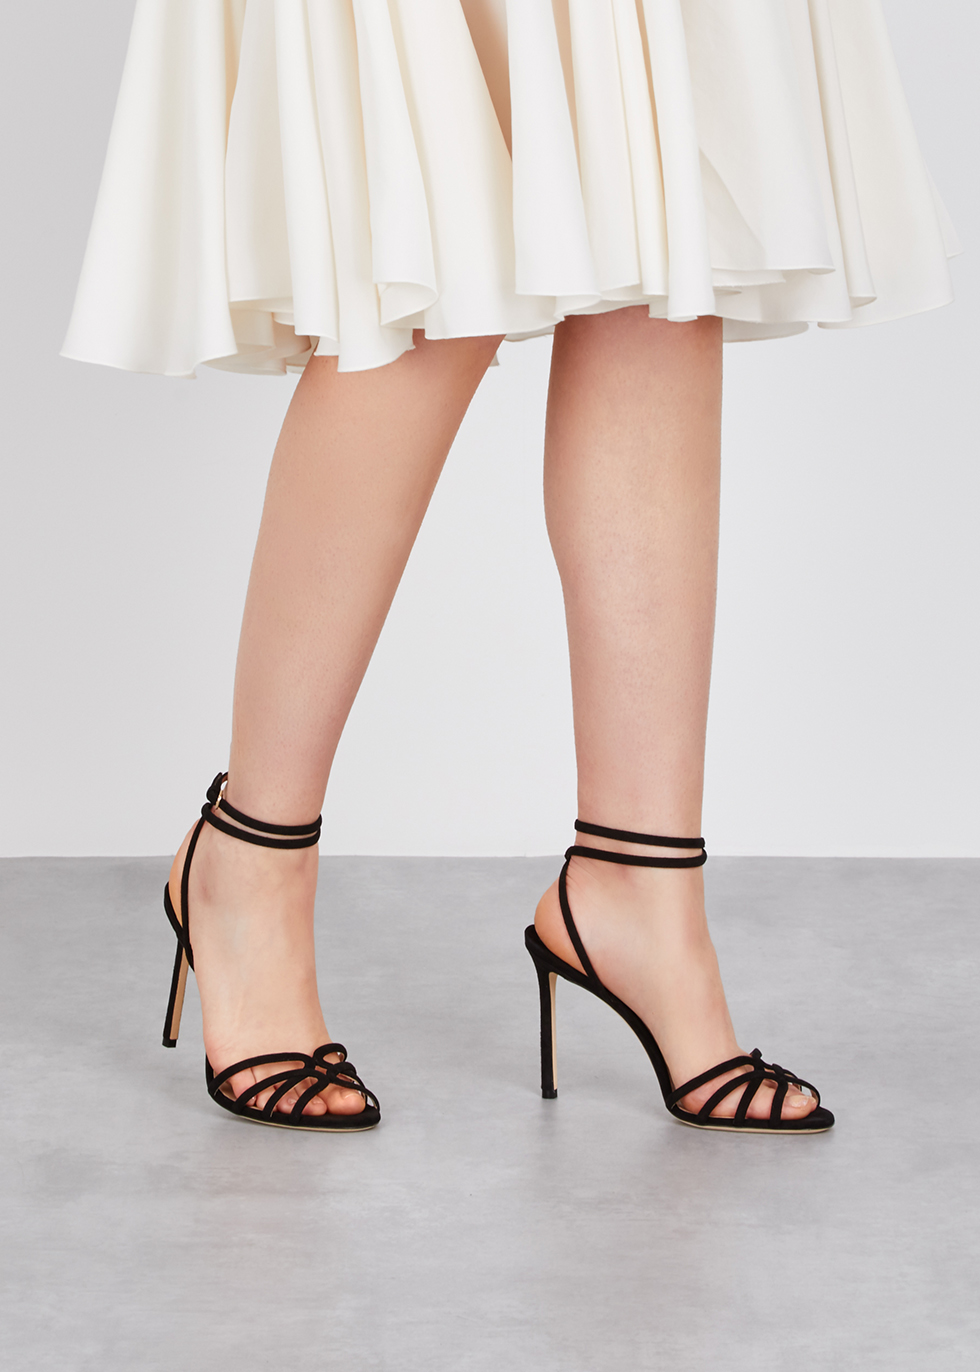 d76d0d2f3b3 Jimmy Choo Mimi 100 black suede sandals - Harvey Nichols